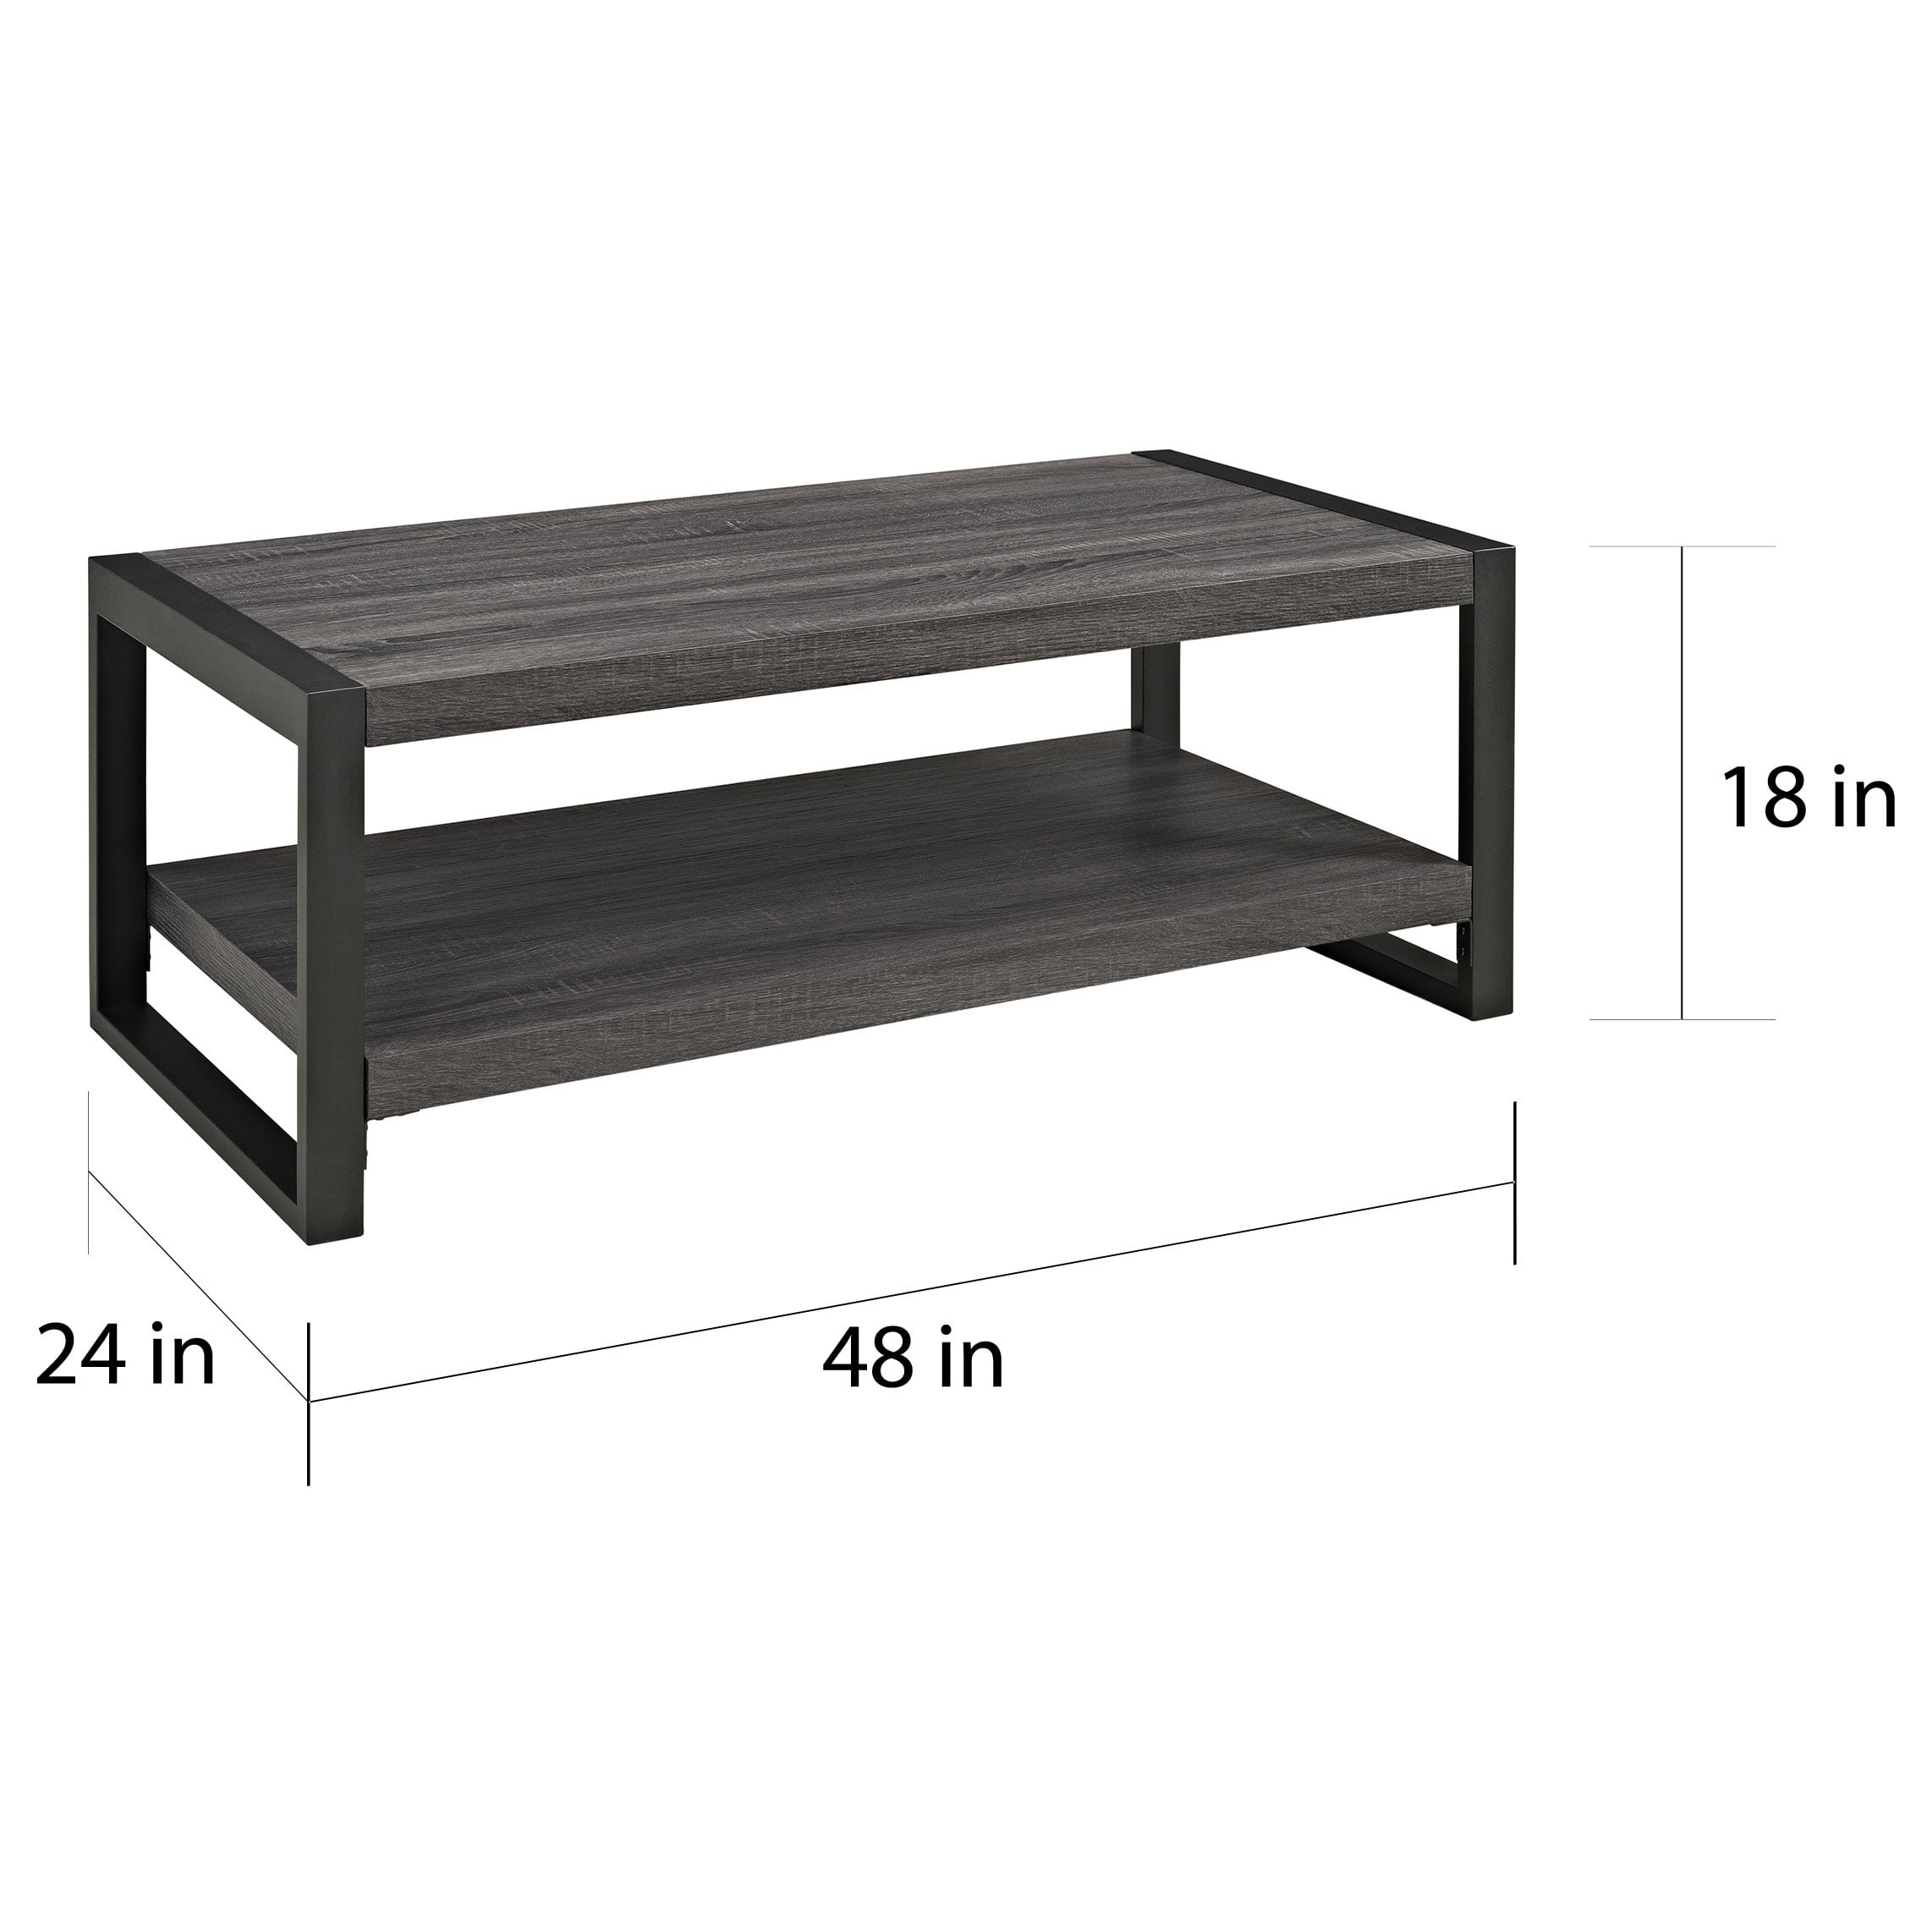 "Shop Angelo:home 48-Inch Coffee Table - On Sale - Free Shipping in Chevron 48"" Coffee Tables (Image 6 of 9)"